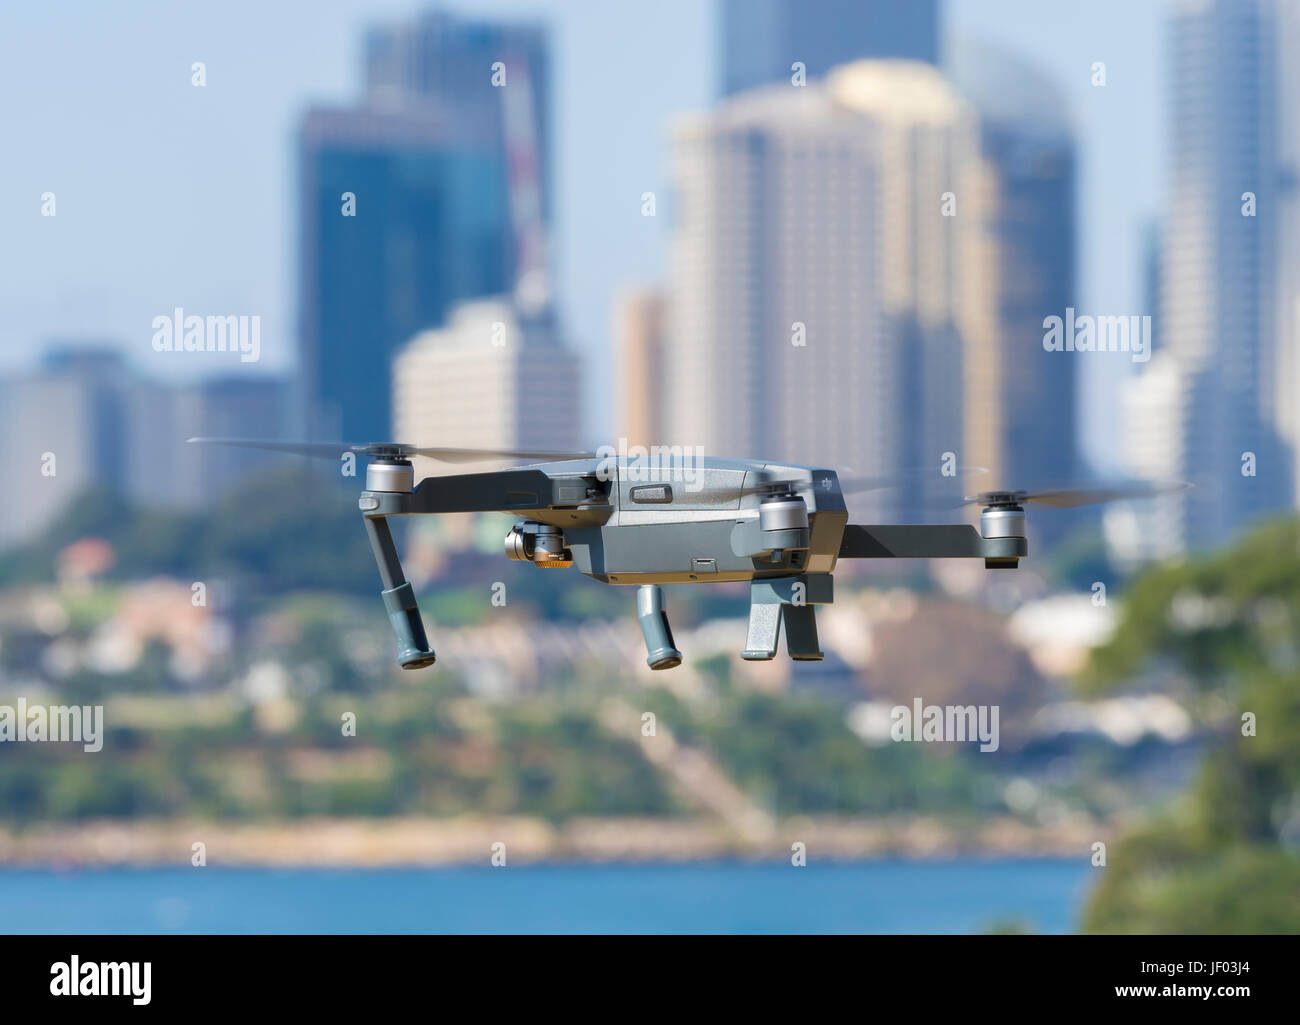 Drone flying near city centre - Stock Image